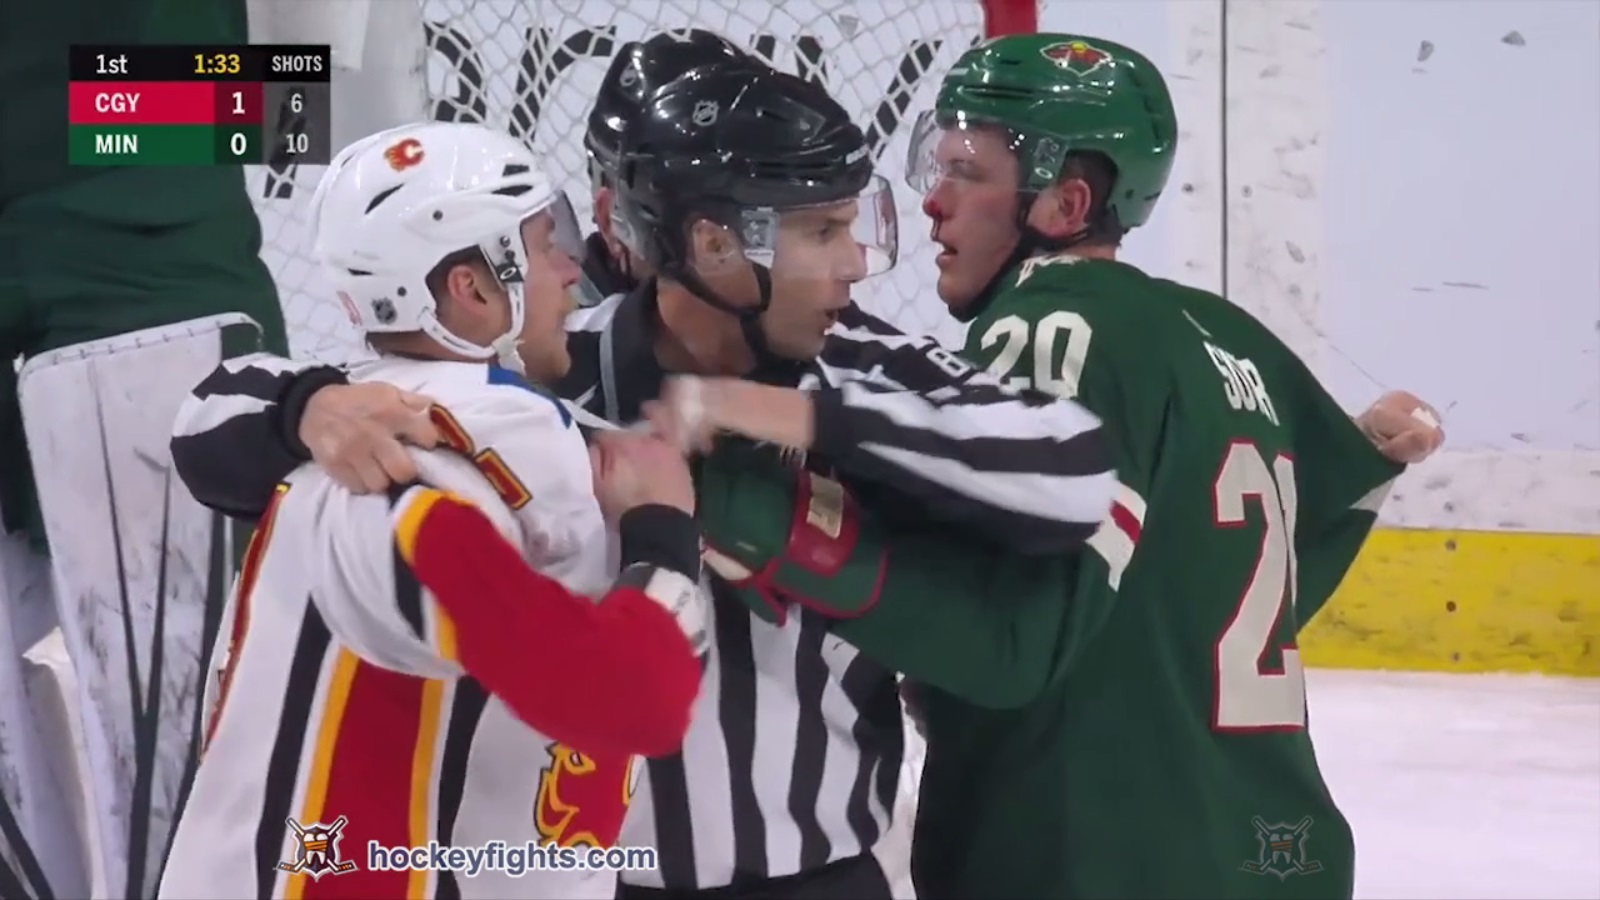 Ryan Suter vs. Sam Bennett